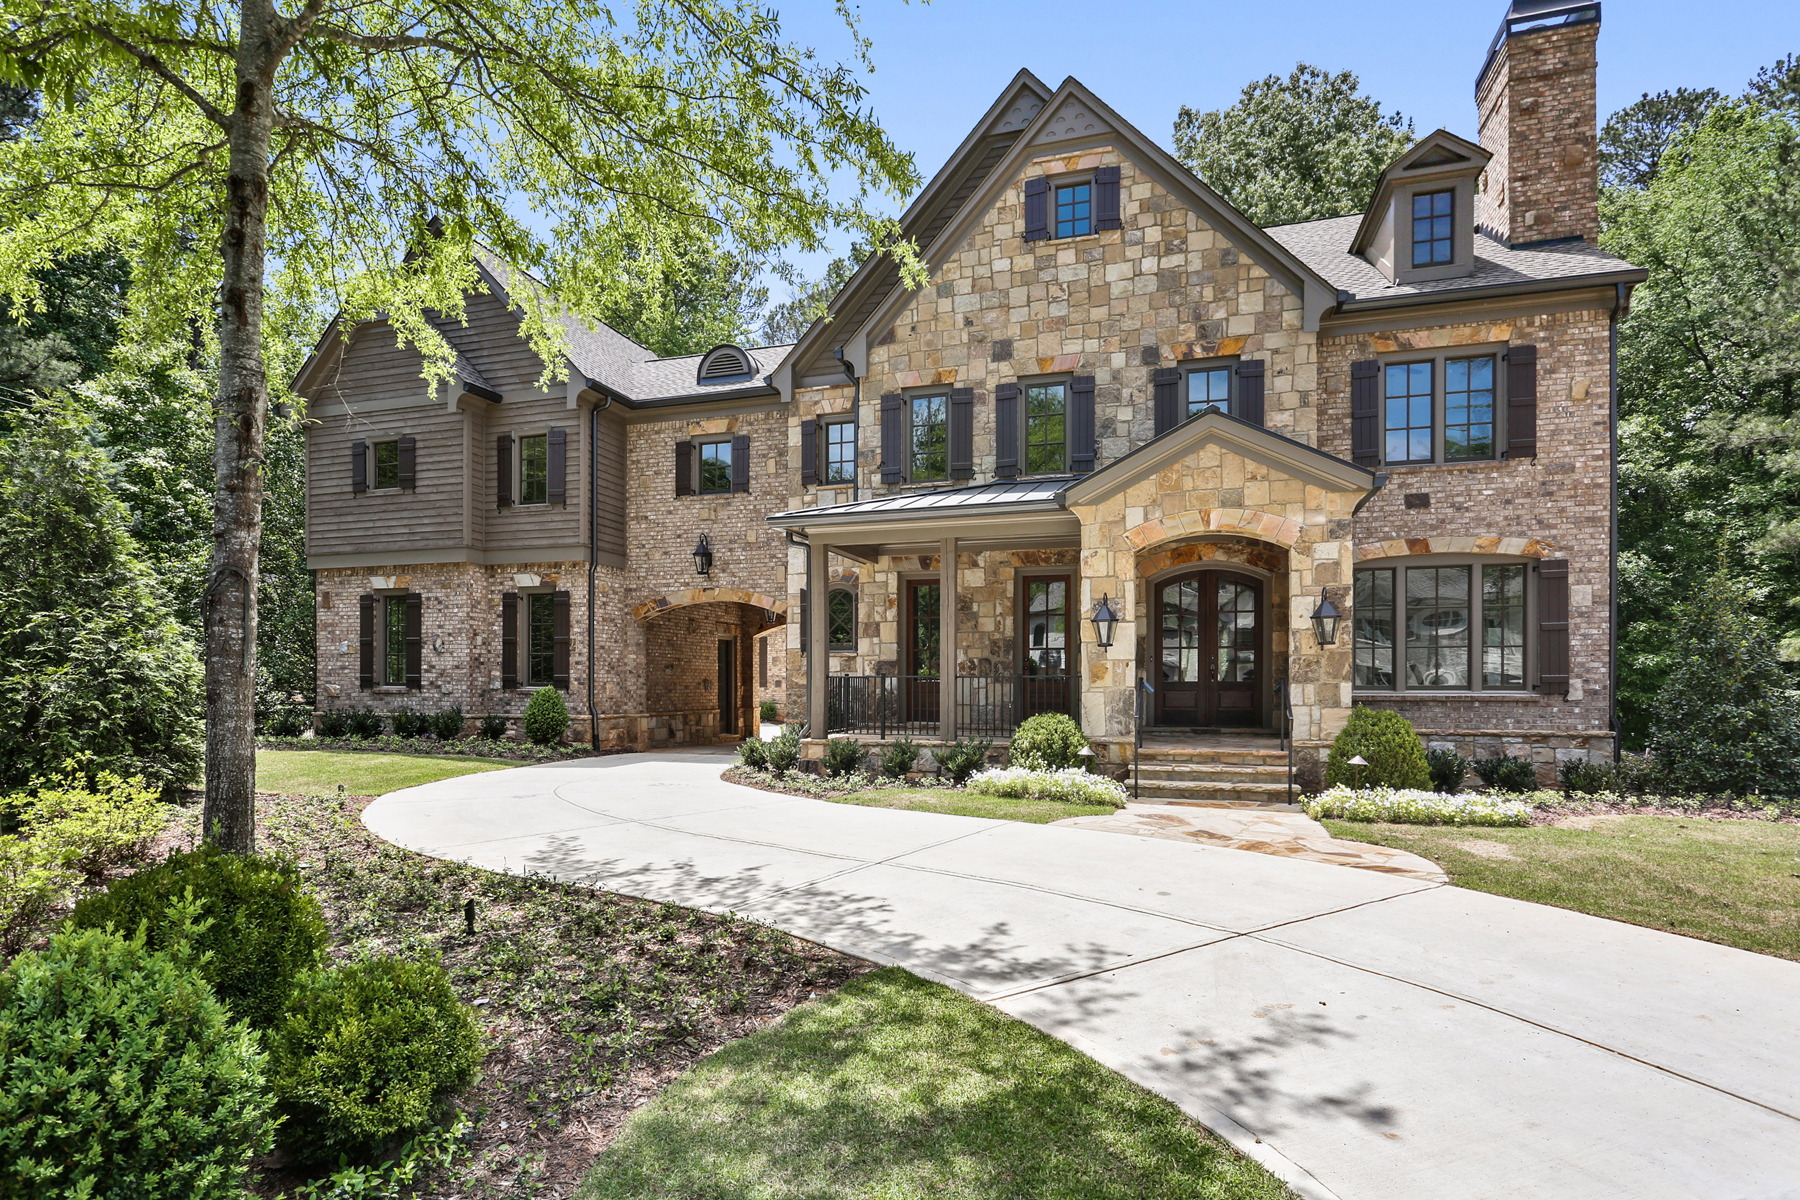 獨棟家庭住宅 為 出售 在 Stunning Brick And Stone New Construction In Prime Sandy Springs Location 200 Rivermere Way Atlanta, 喬治亞州, 30350 美國